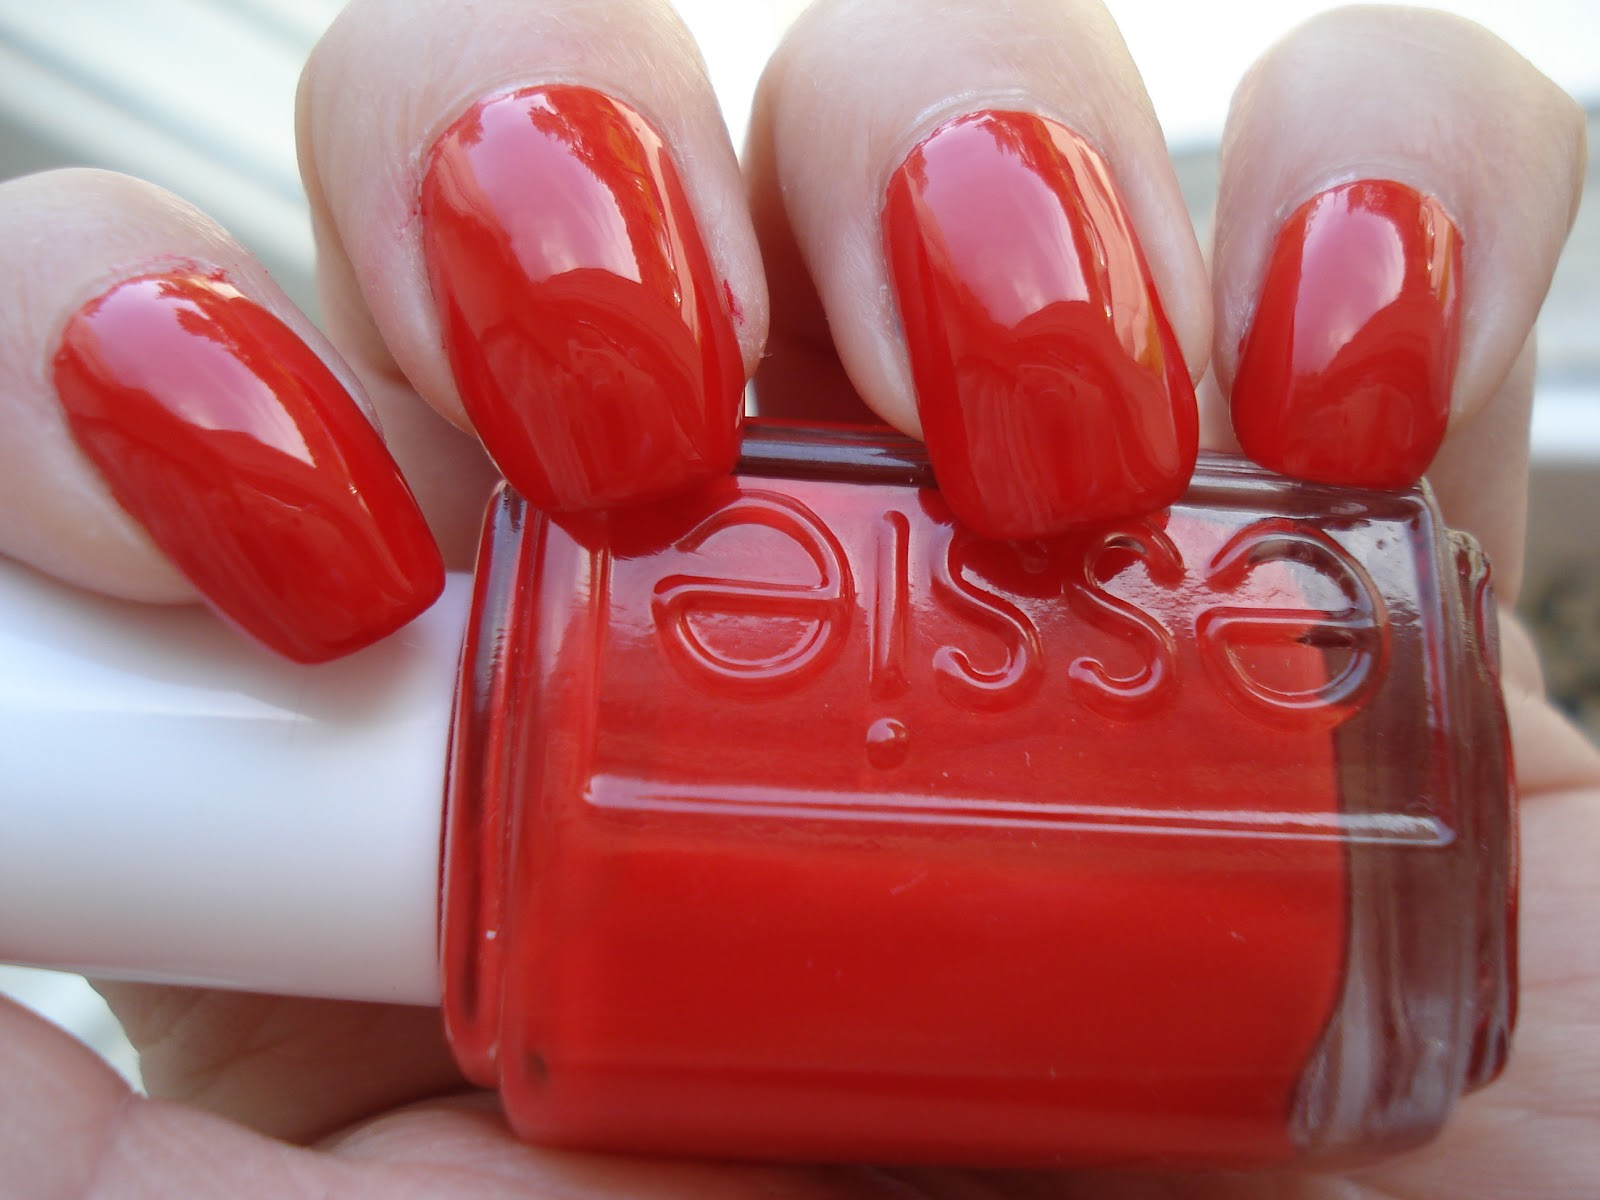 Little Miss Nailpolish: Essie Snap Happy - swatches and review